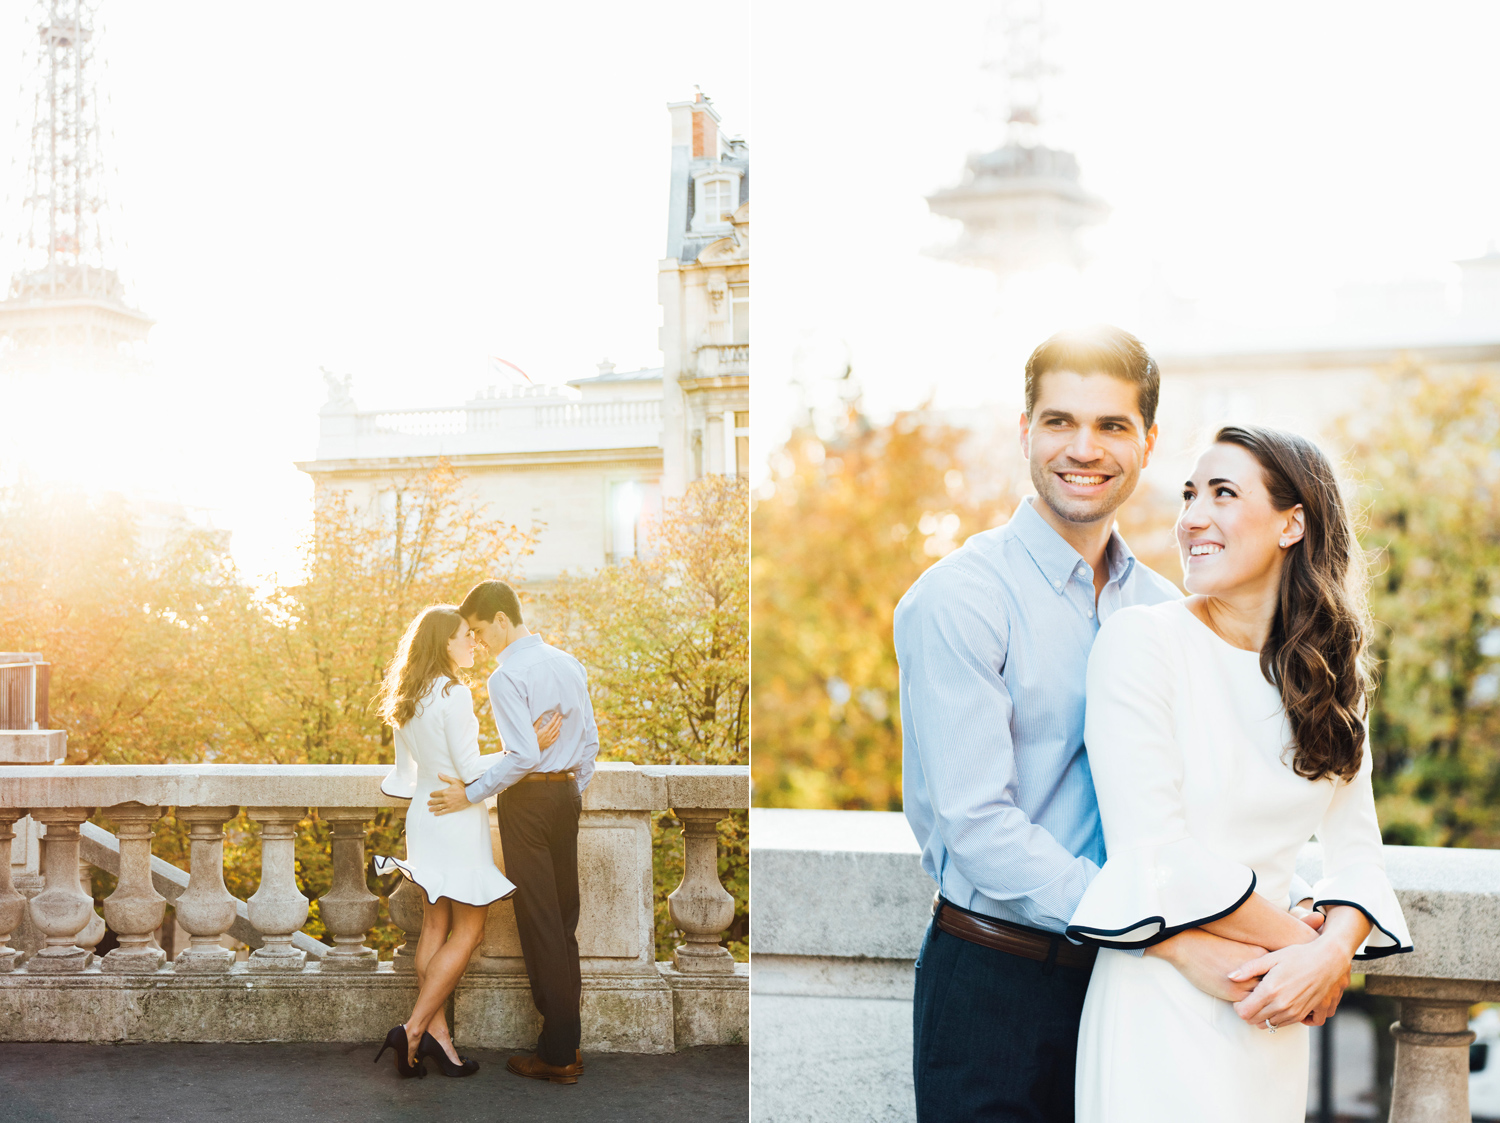 011-katie-mitchell-paris-engagement-photographer-france.jpg